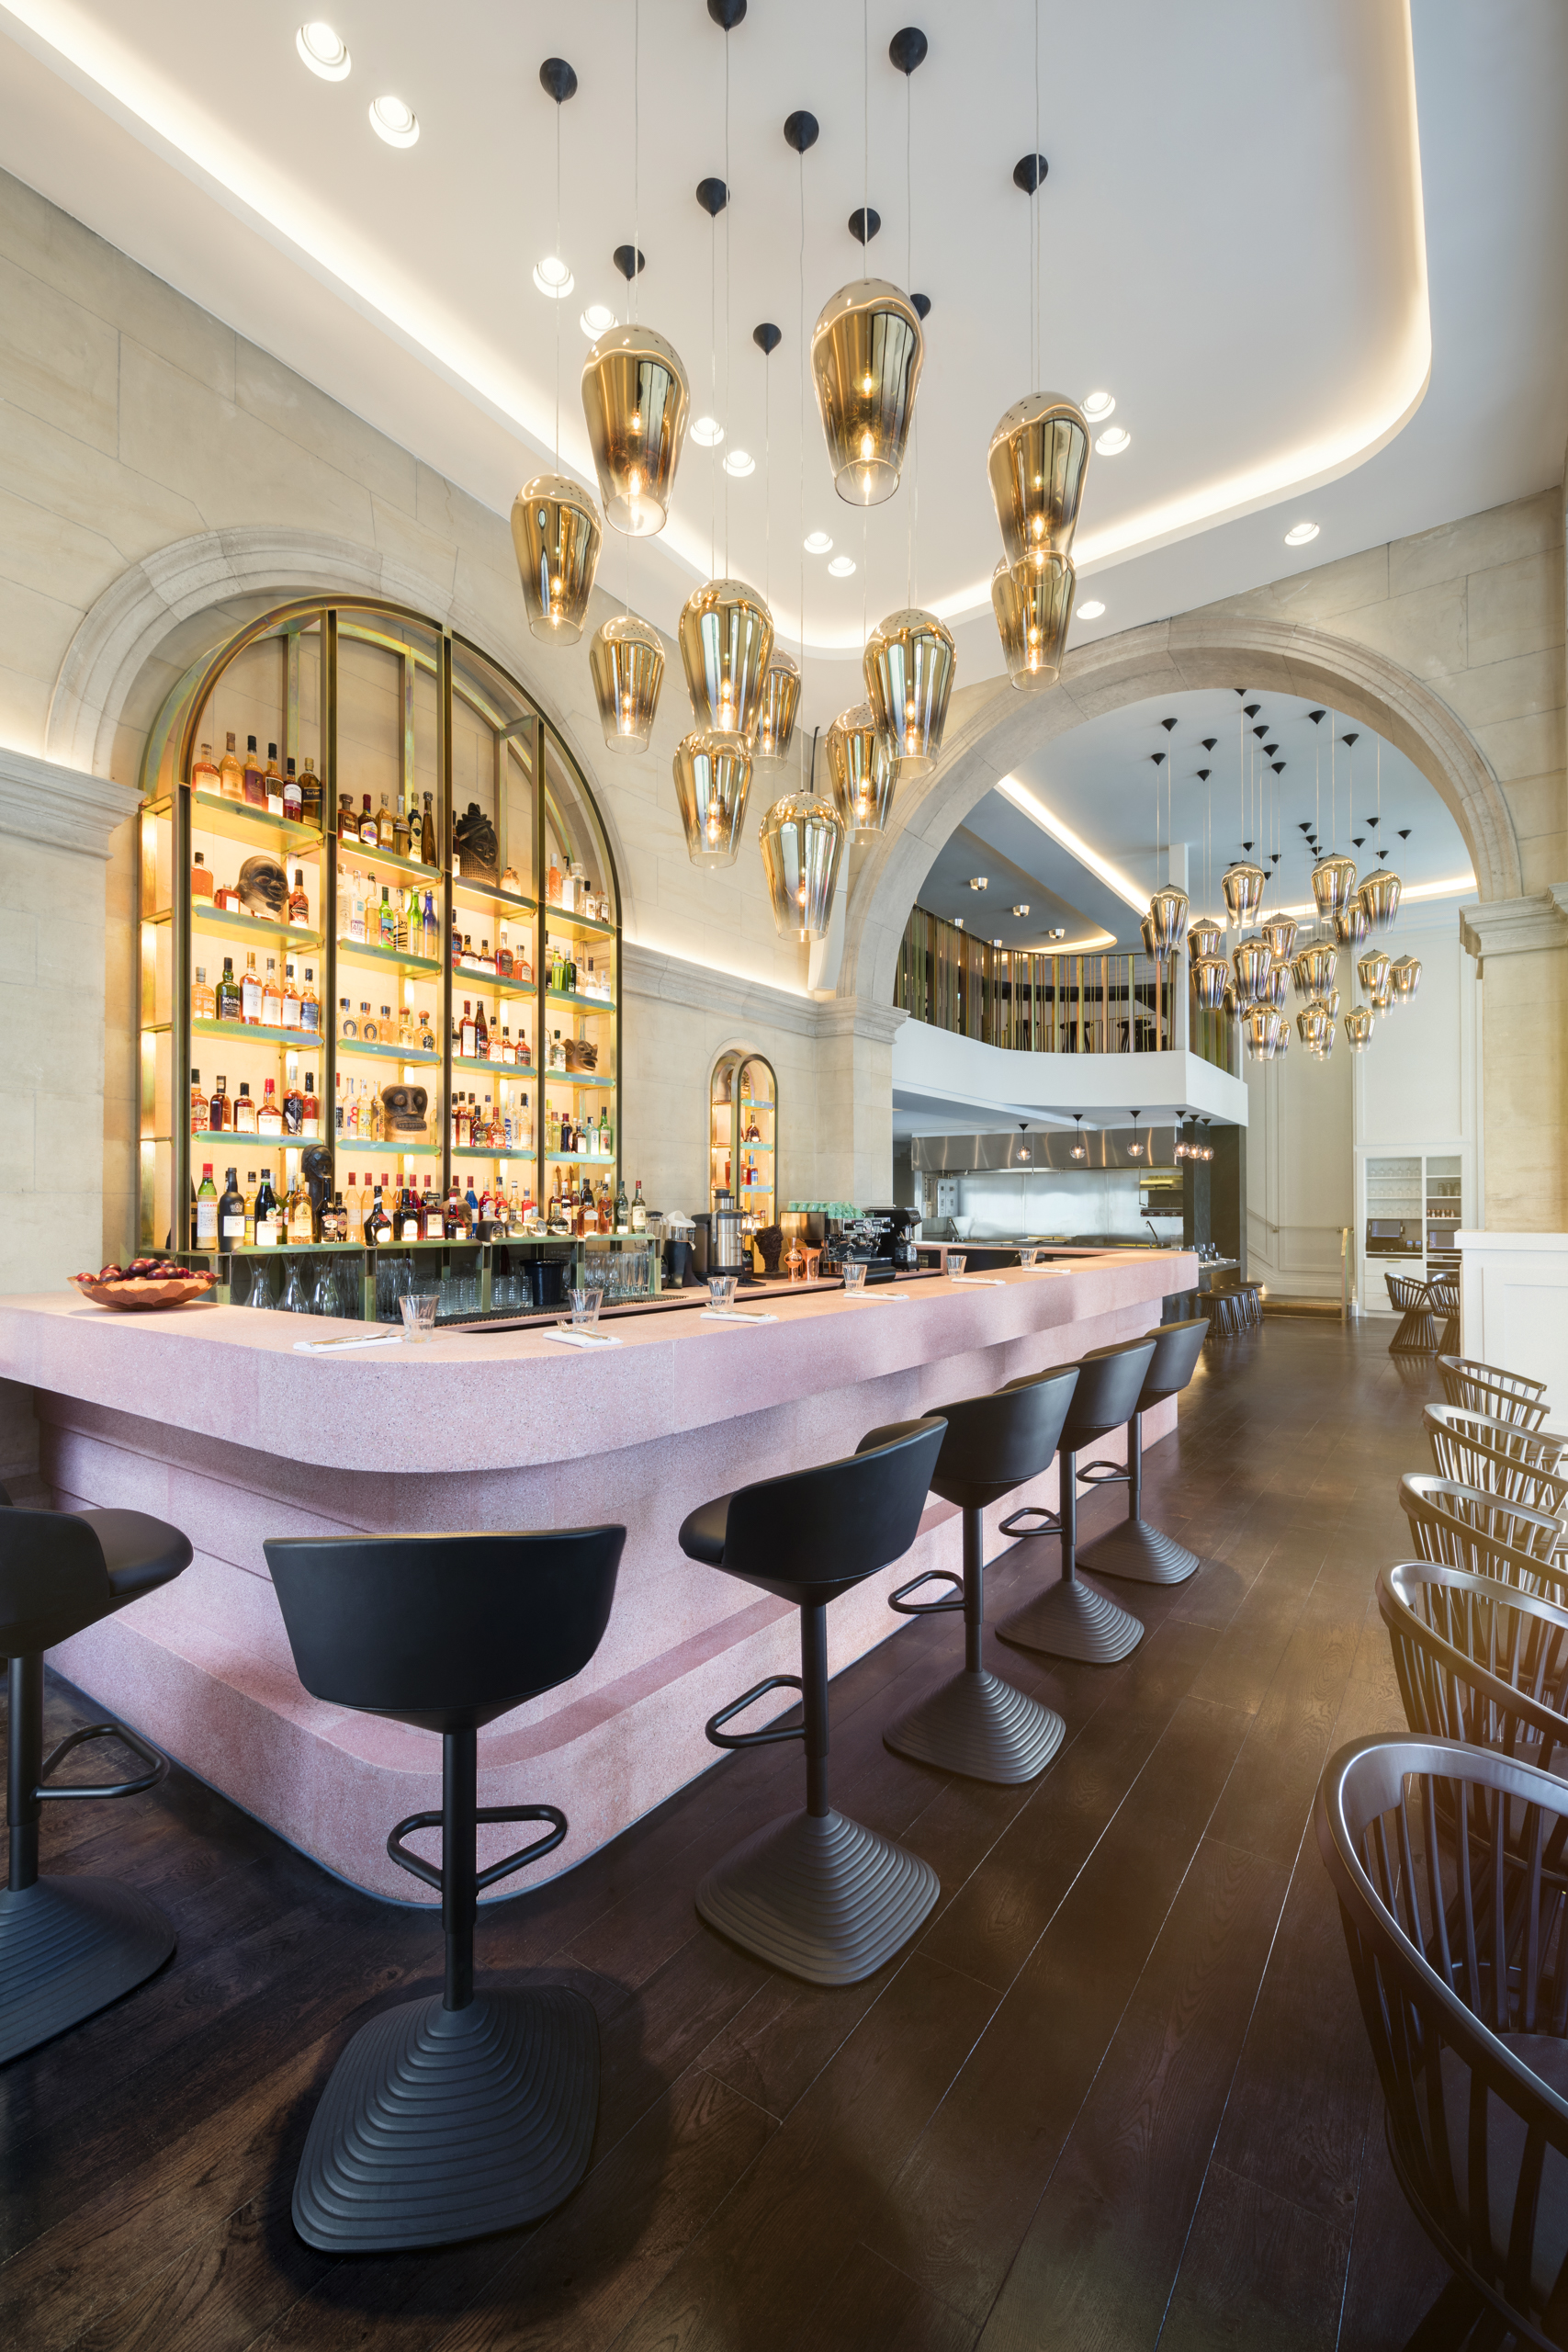 Tom dixon designs interiors for new london restaurant for Restaurant design london